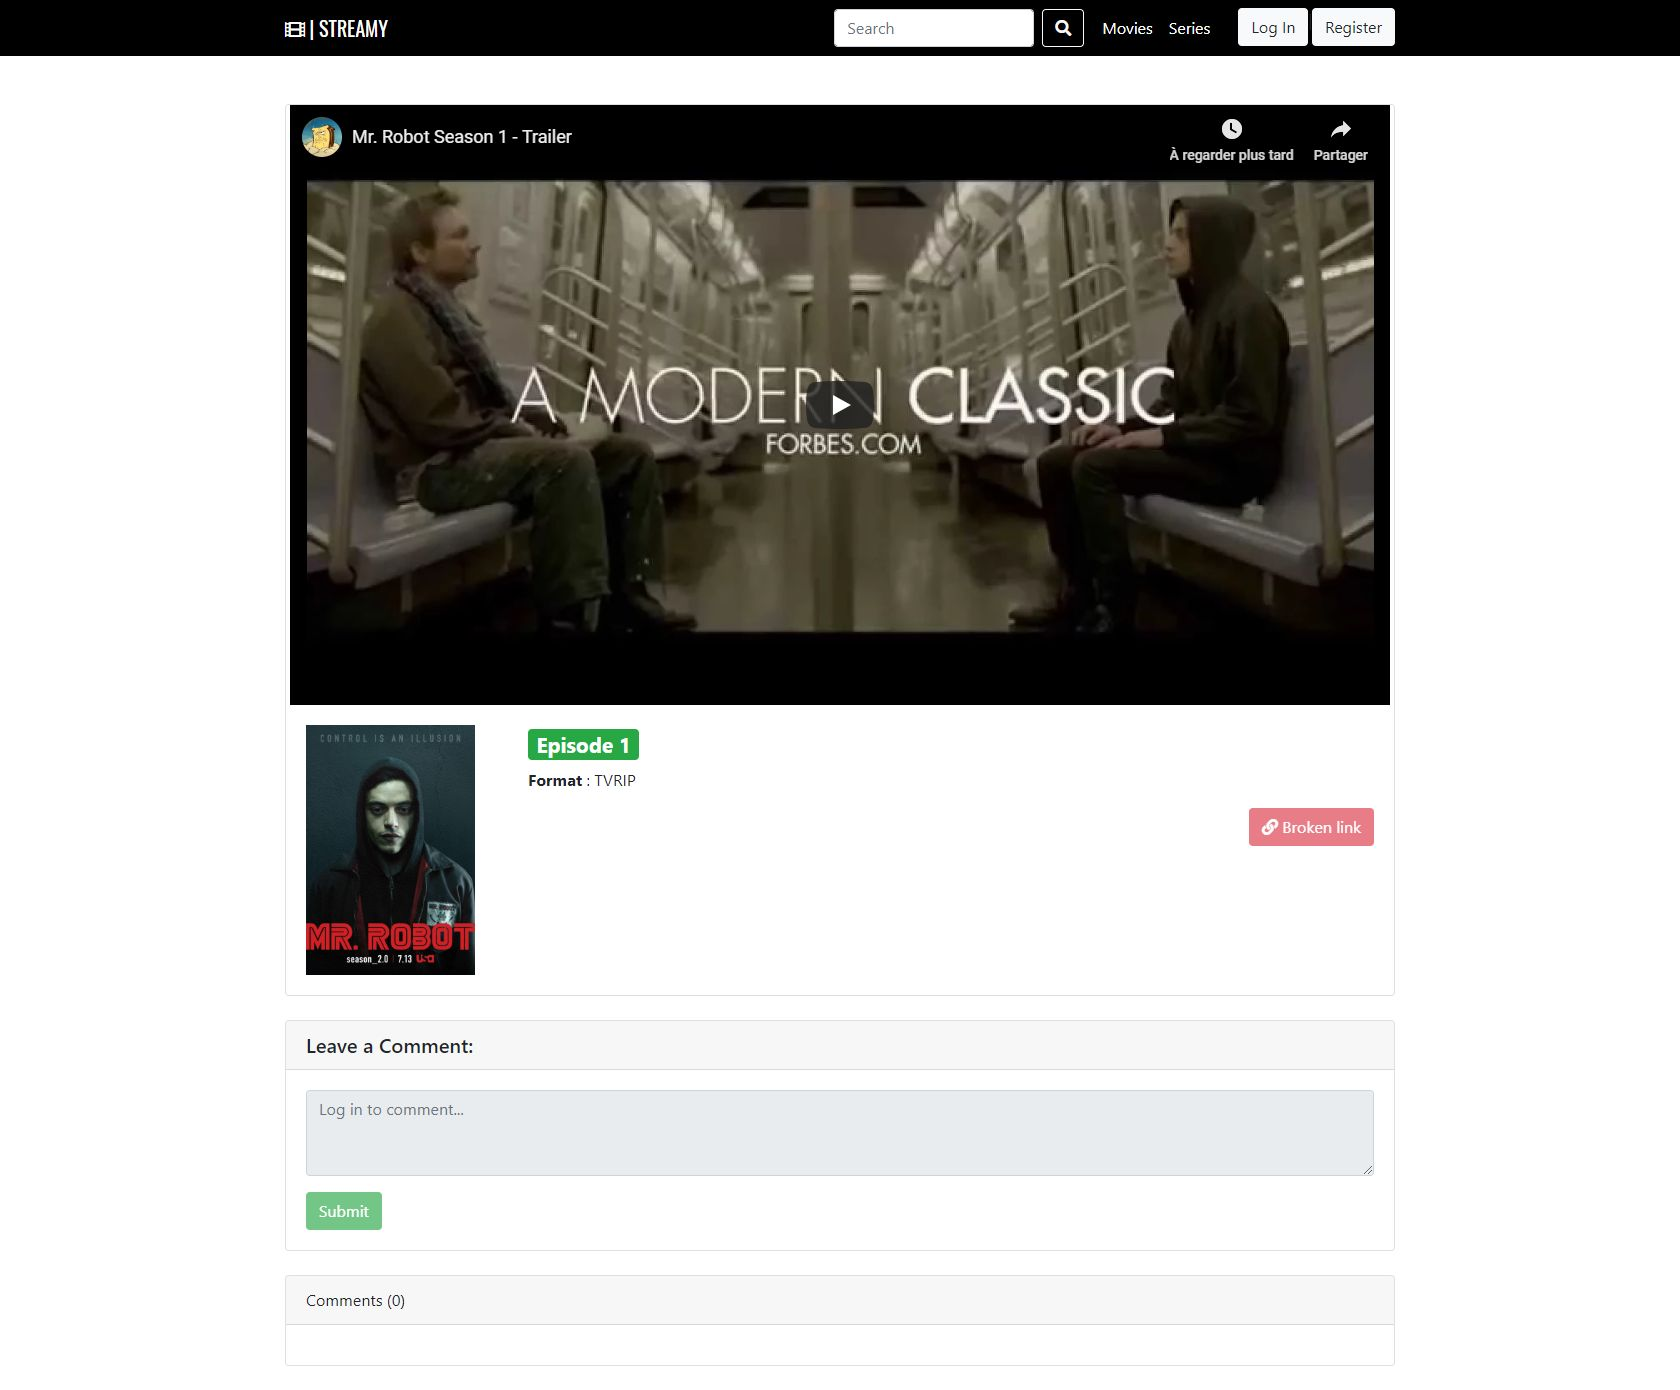 Streamy - Movies And Series Streaming Platform PHP Screenshot 21